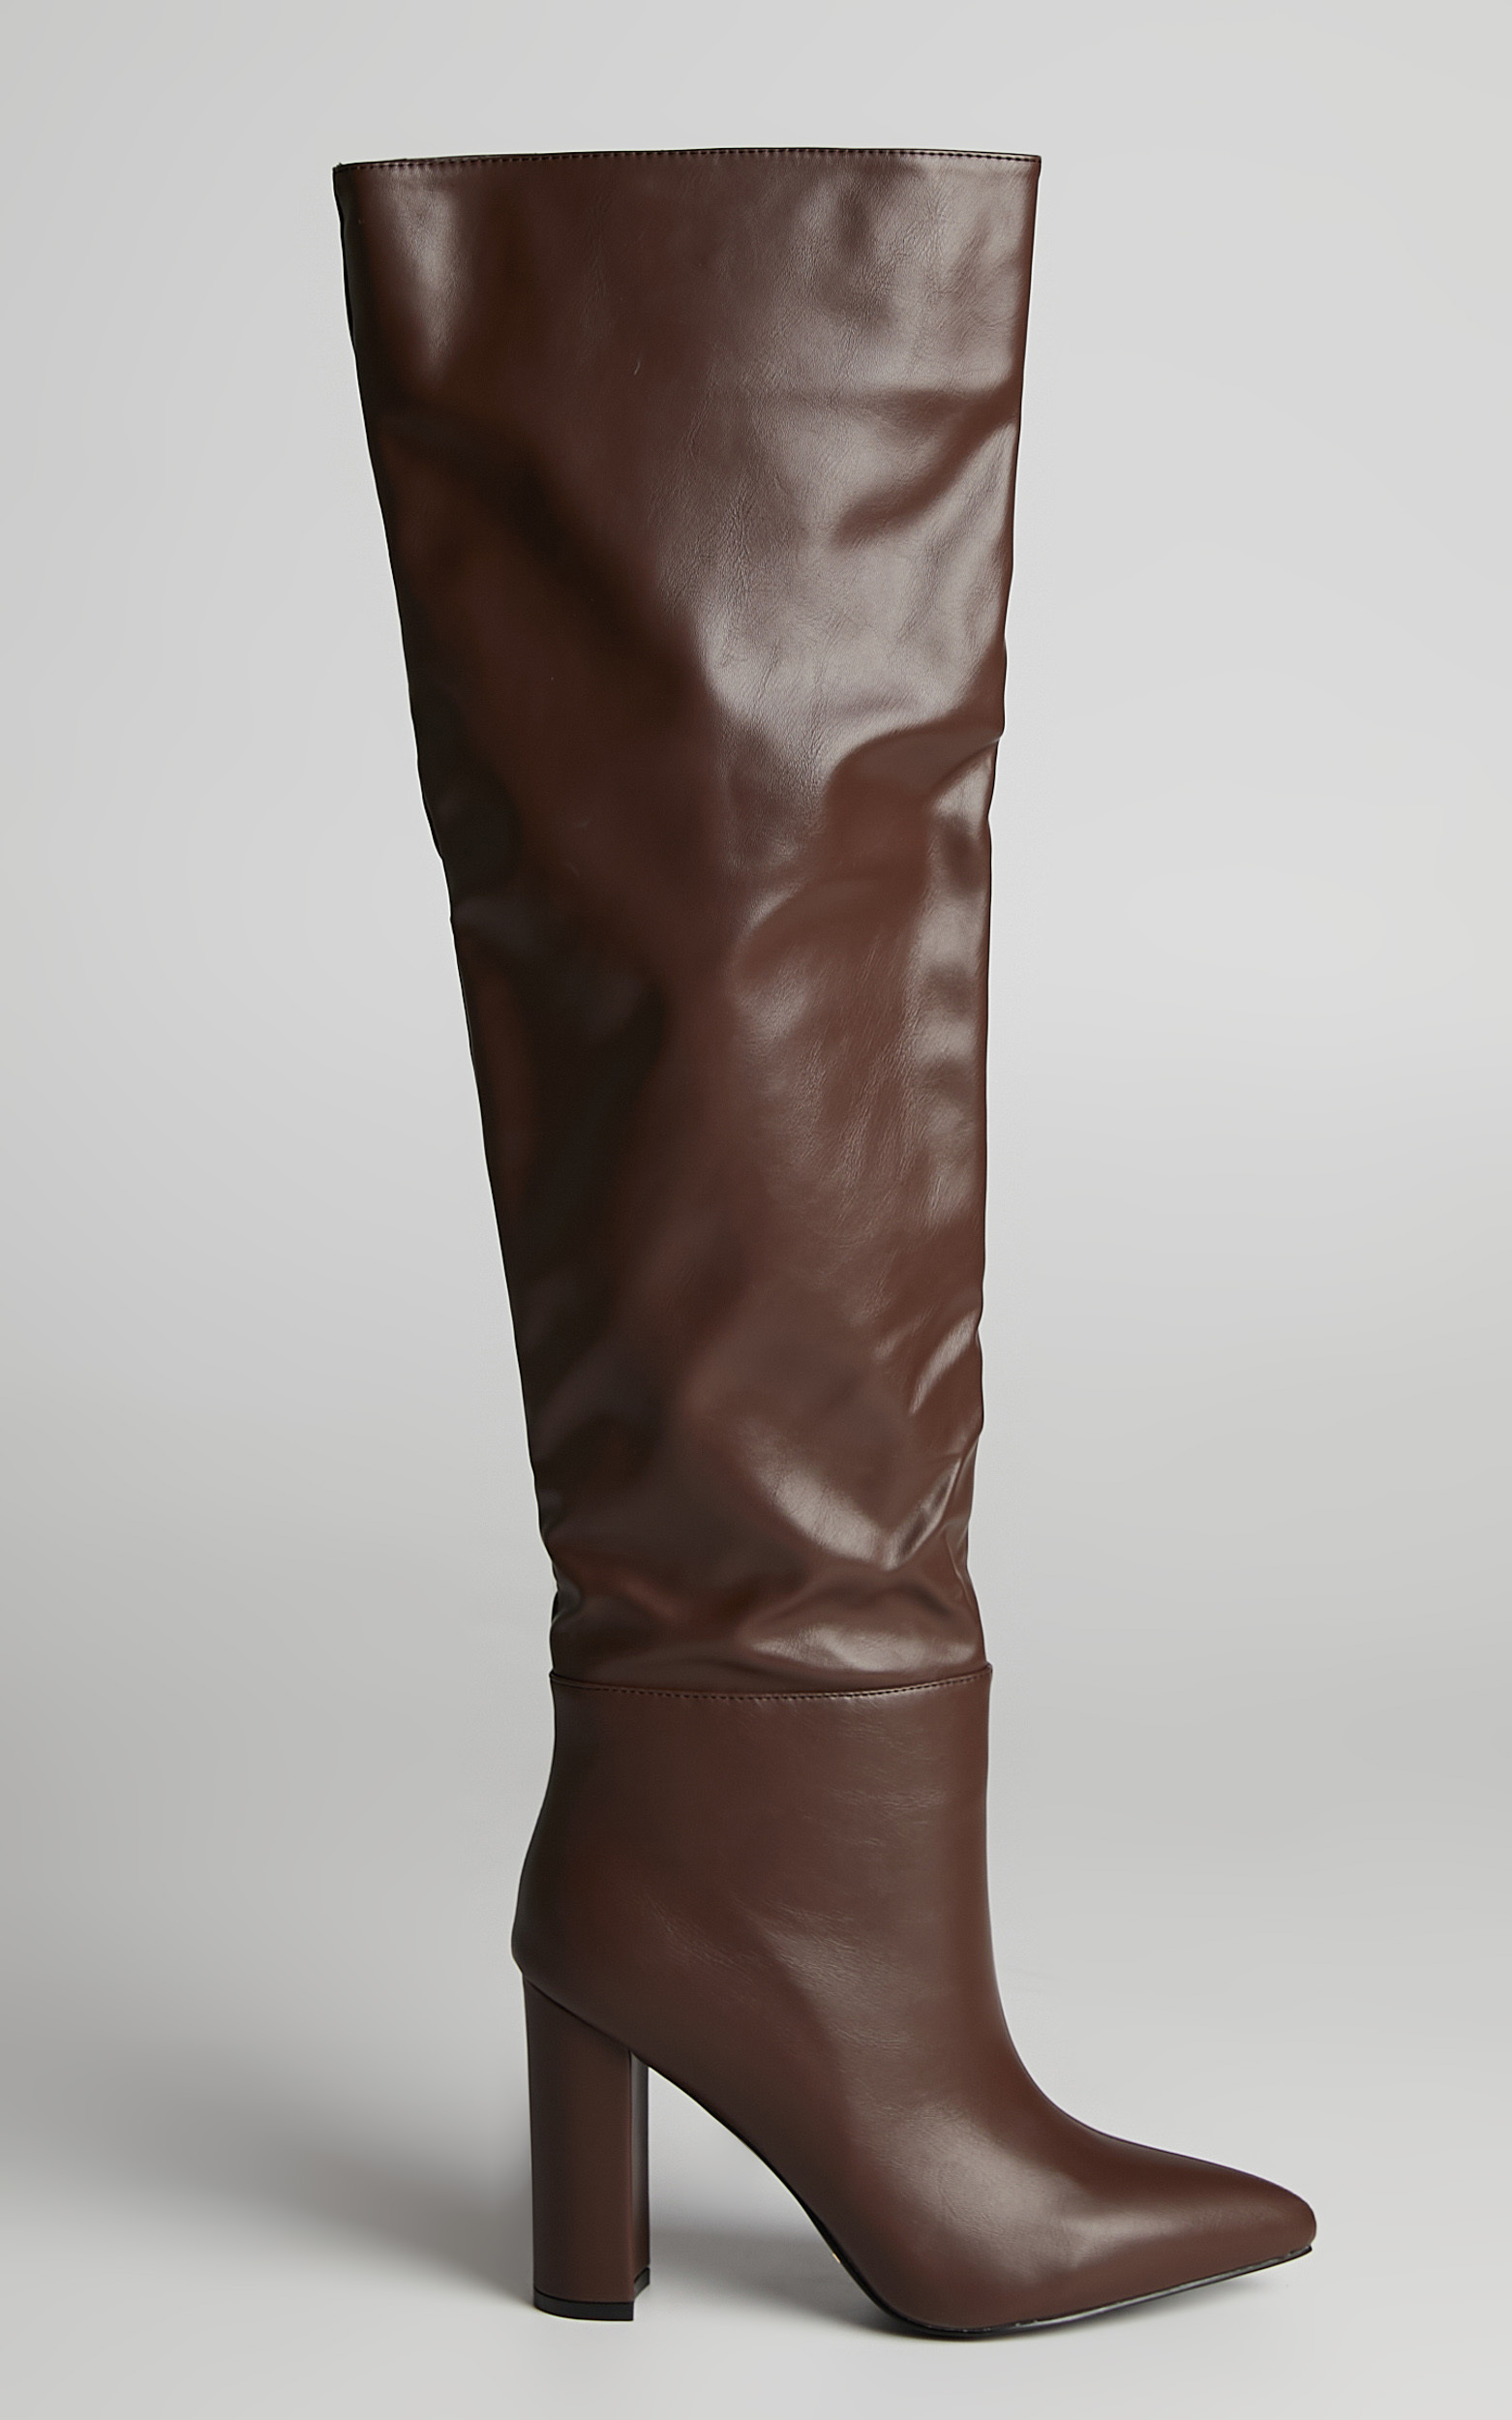 Billini - Moscow Boots in Espresso - 05, BRN2, hi-res image number null